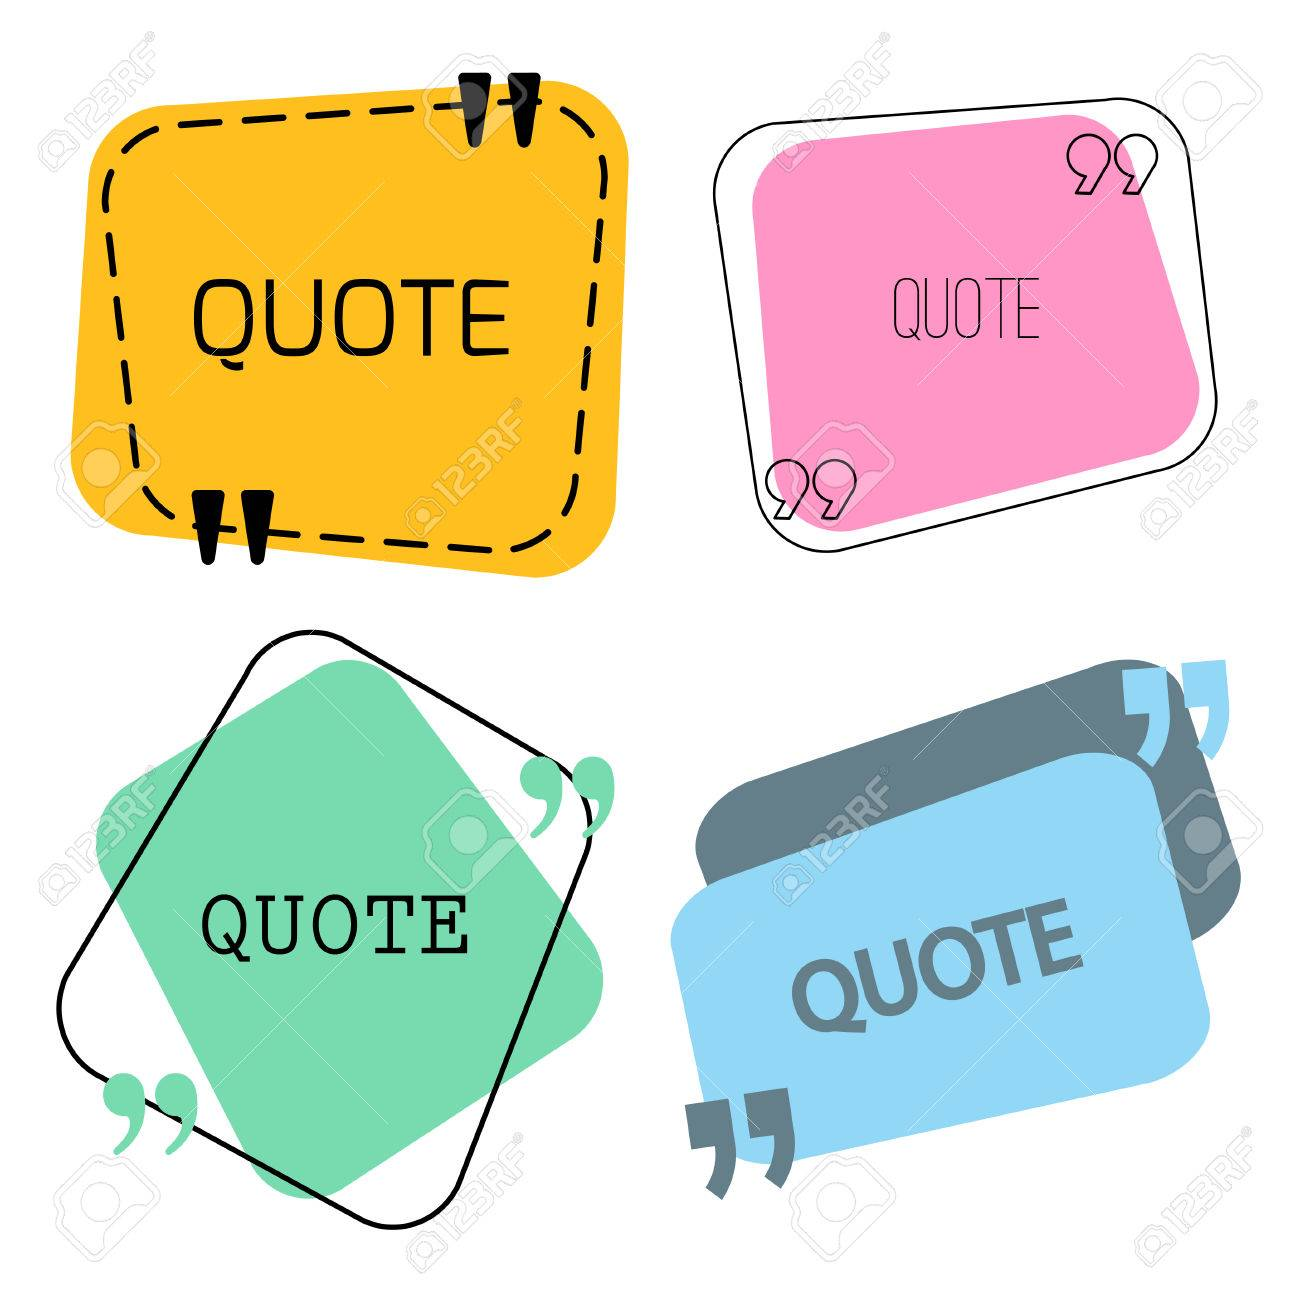 quotes frame and sign set vector stock illustration for chat